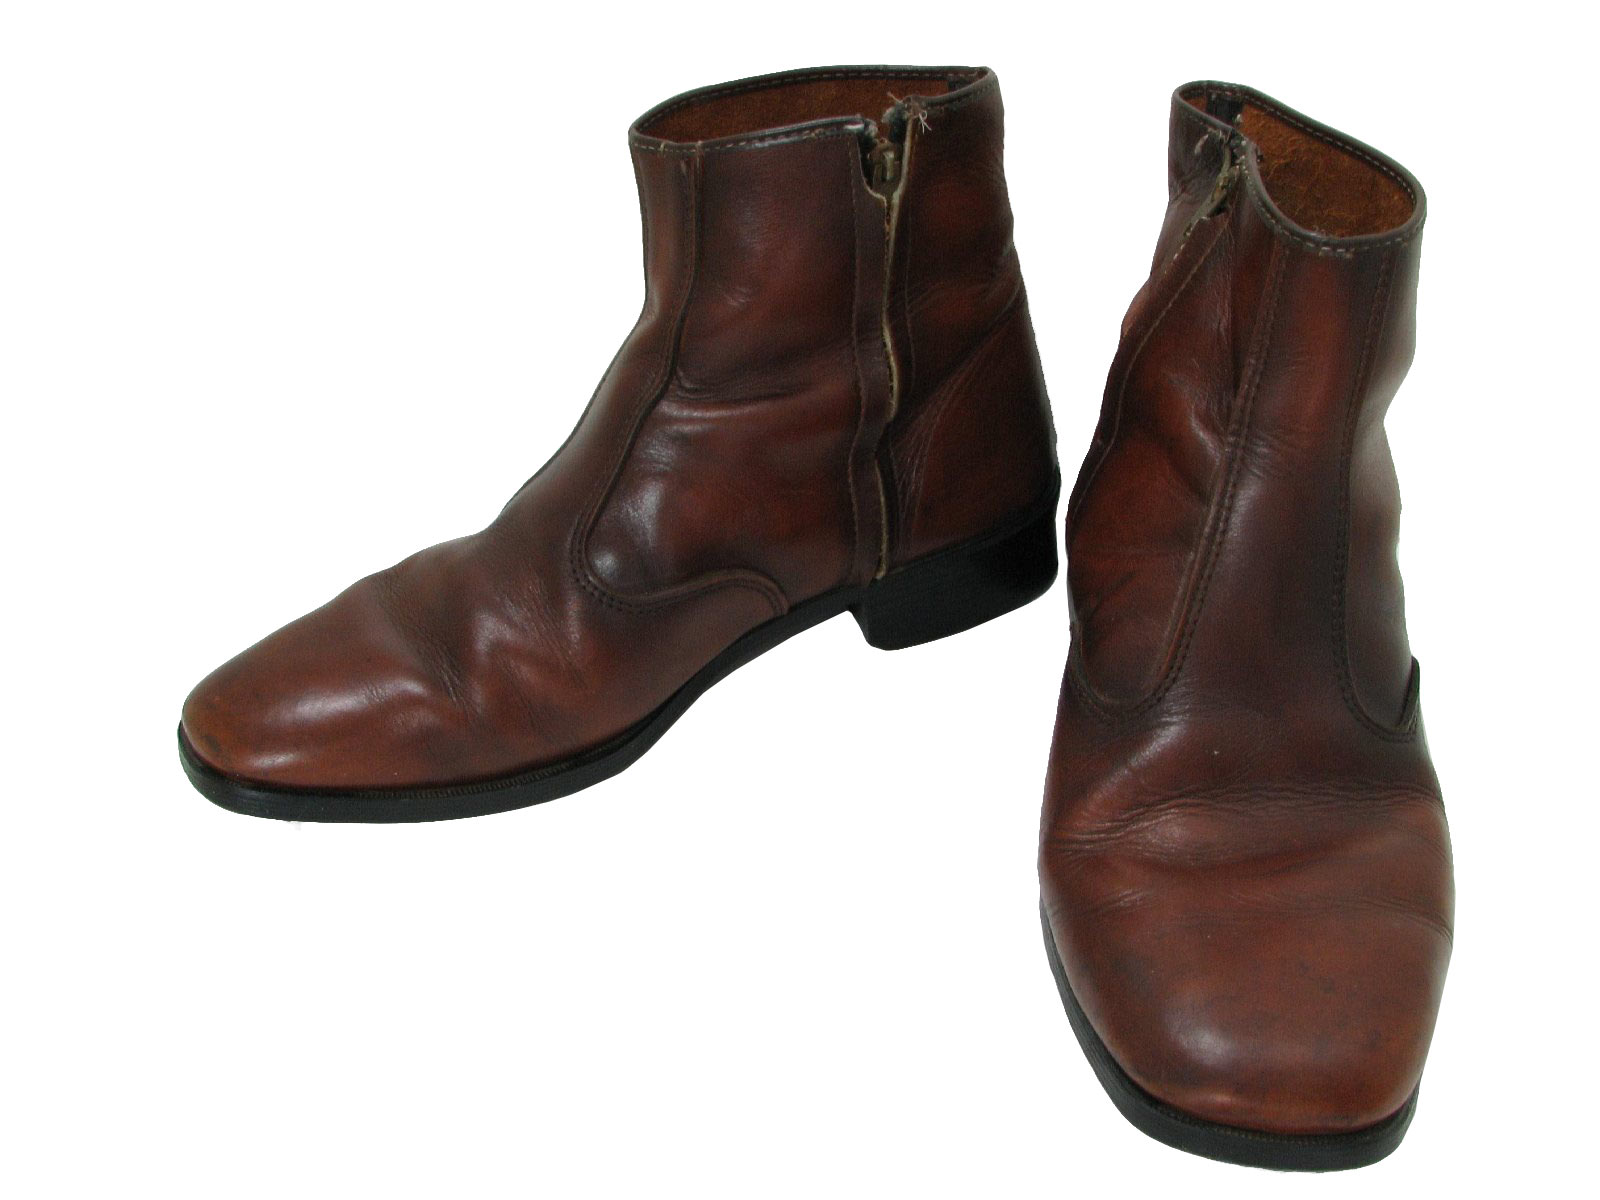 Mens Leather Ankle Boots TyTJaadc